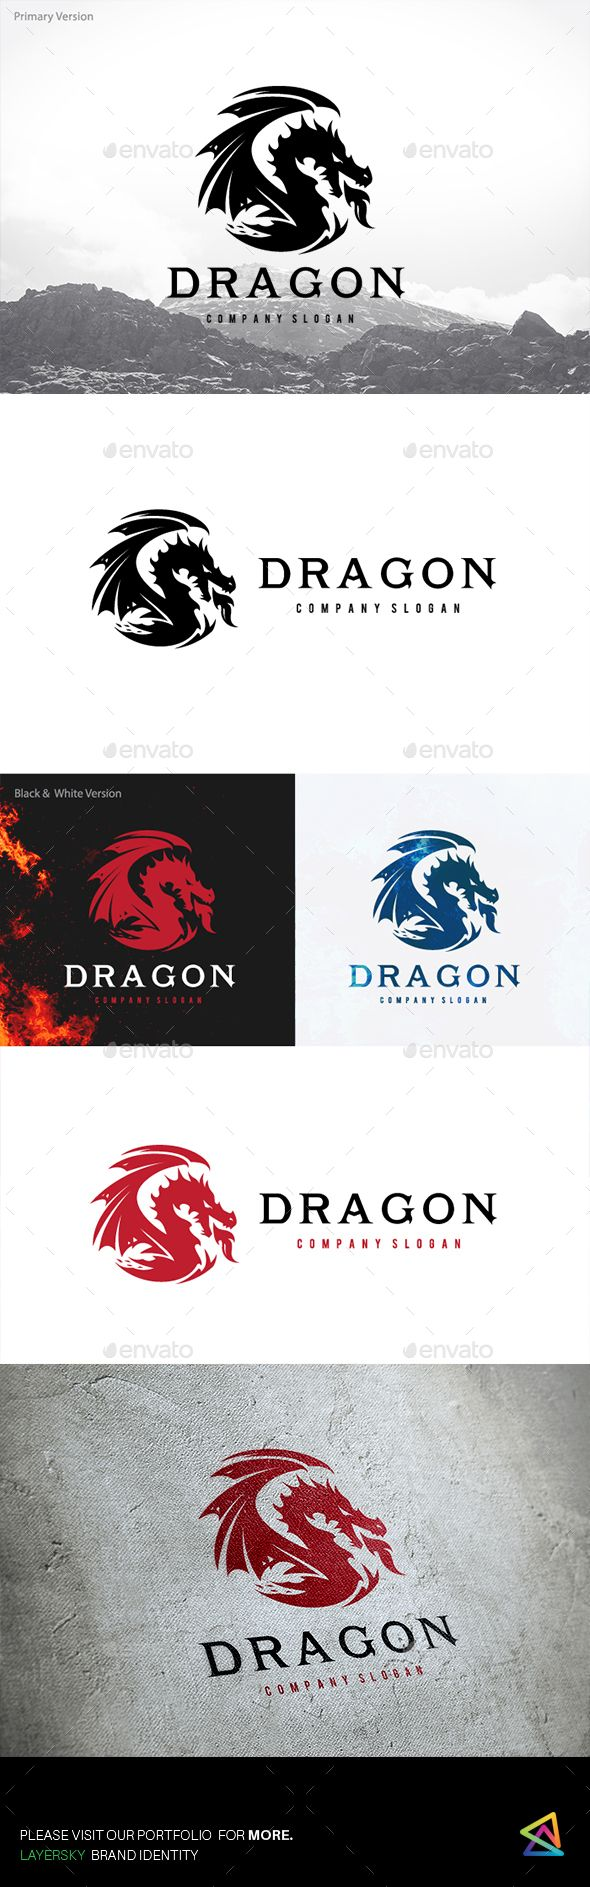 The Best Cartoon Logo Ideas On Pinterest Artist Logo Brand - Artist unbrands famous corporate logos to give them hilarious new meanings